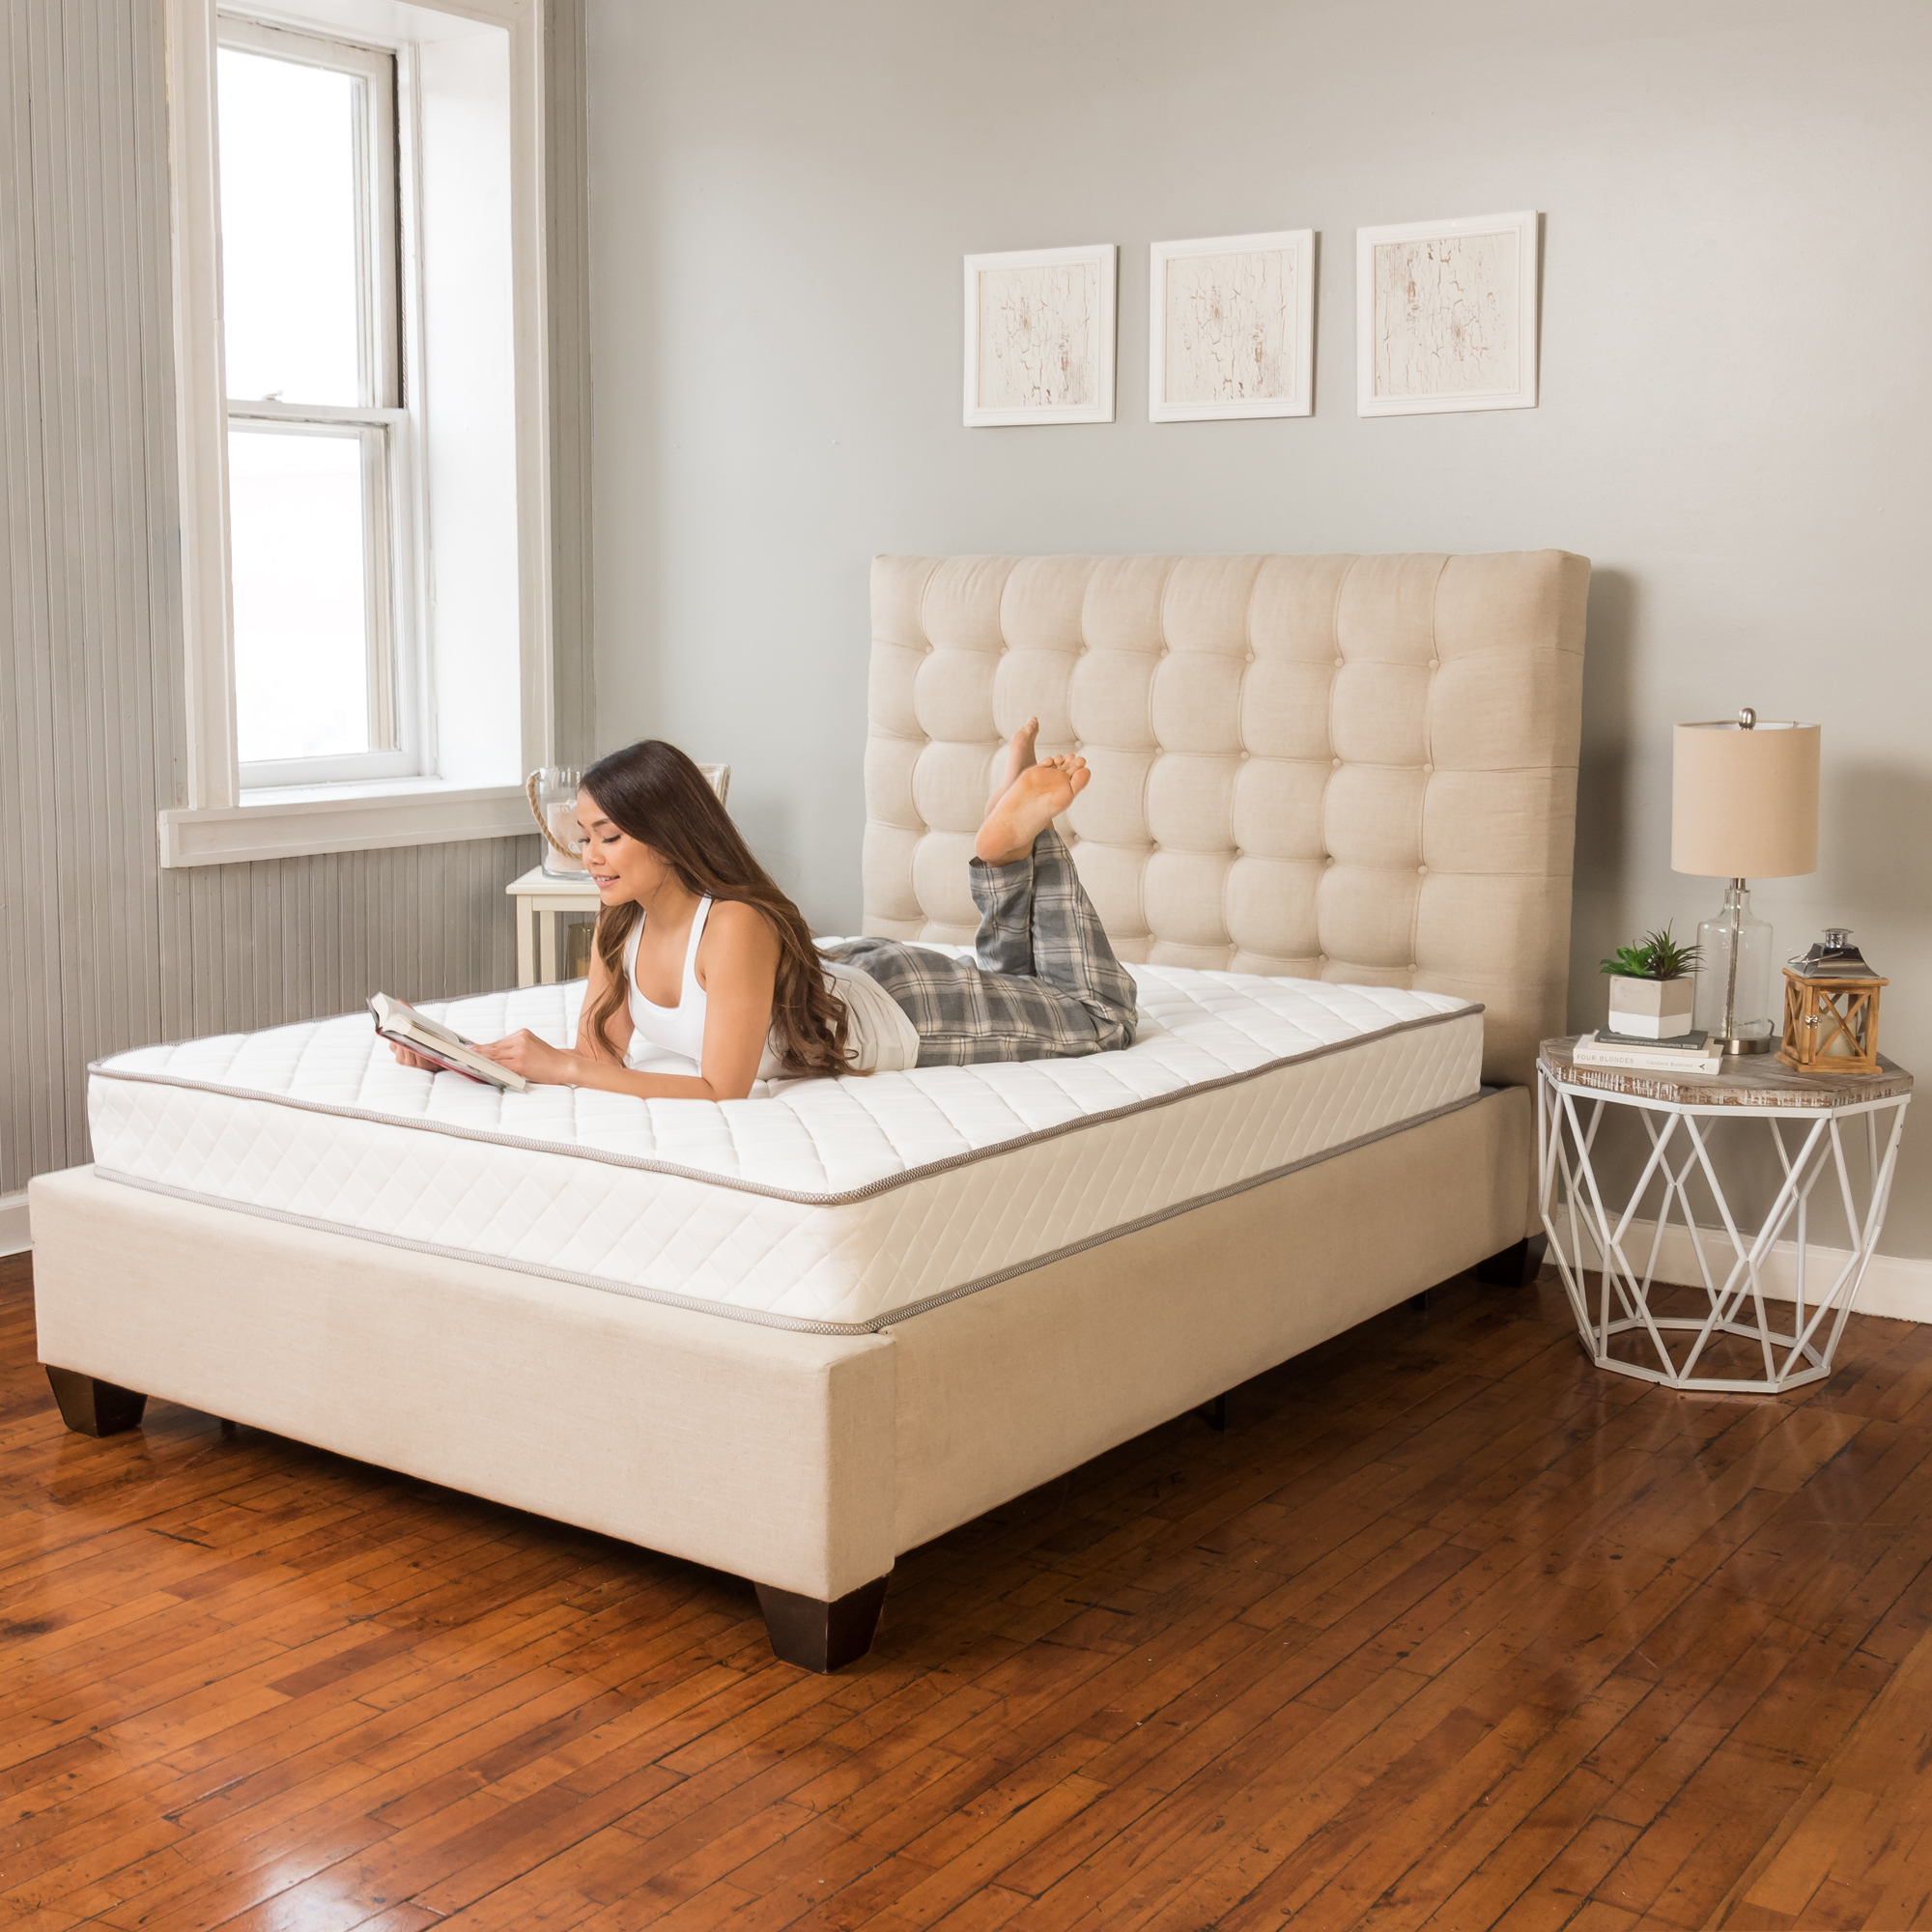 Best Rated Innerspring Mattress Under 300 For 2018 2019